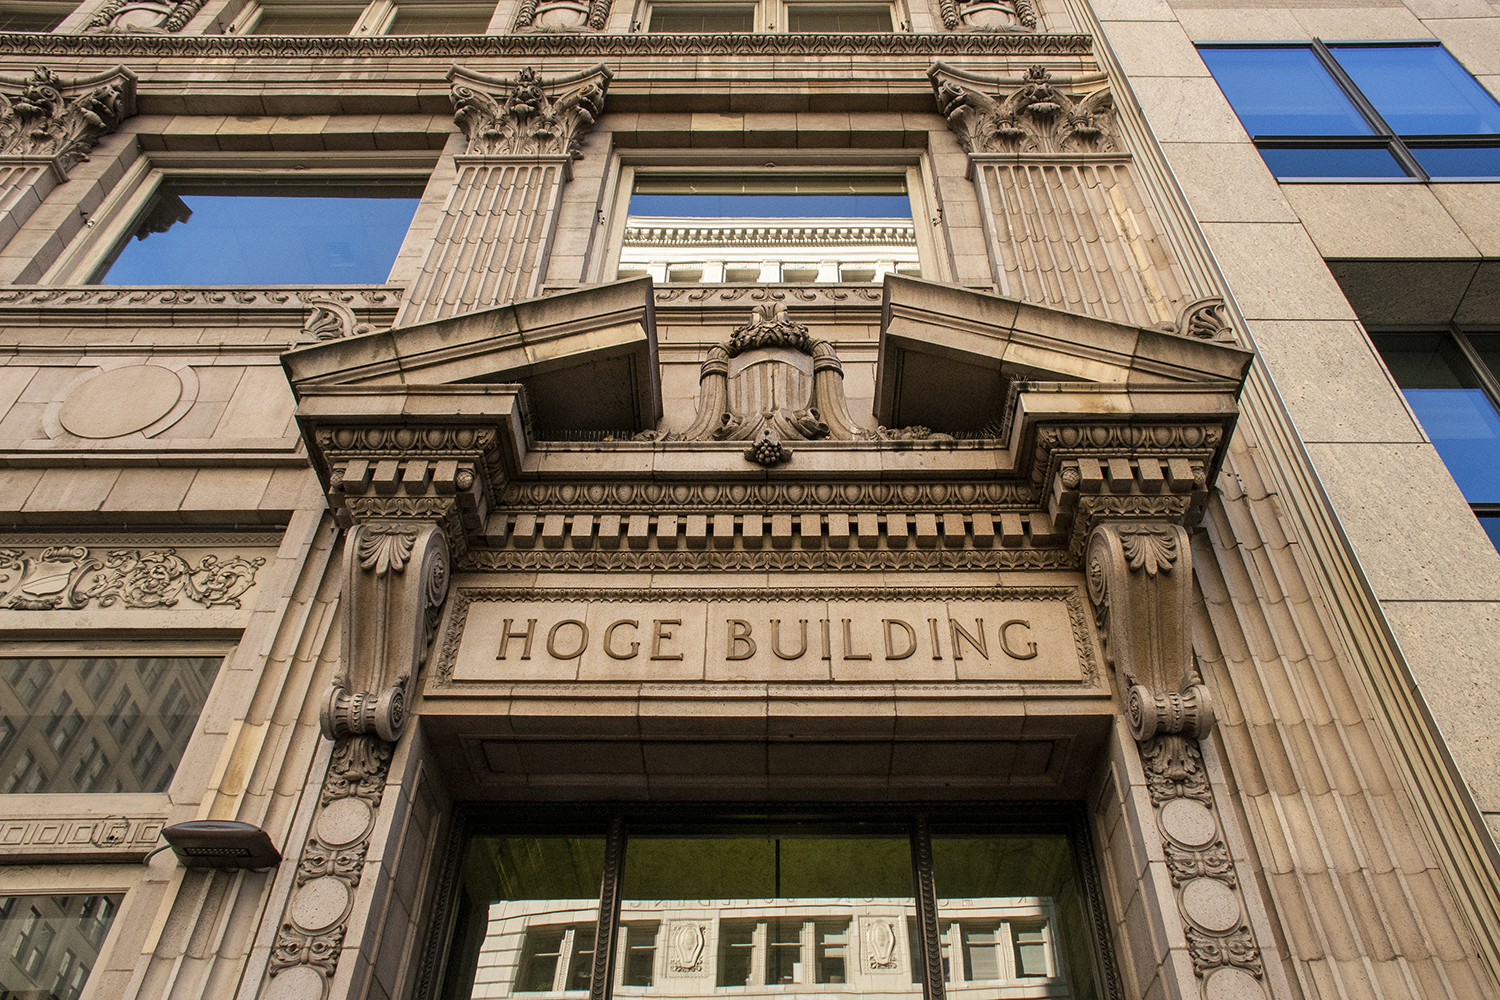 The late James D. Hoge was a successful banker and real estate investor — so successful that he commissioned the construction of his very own building. The 17-story, Beaux-Arts style Hoge Building was built in 1911, just after the Great Seattle Fire. (Image: Rachael Jones / Seattle Refined)